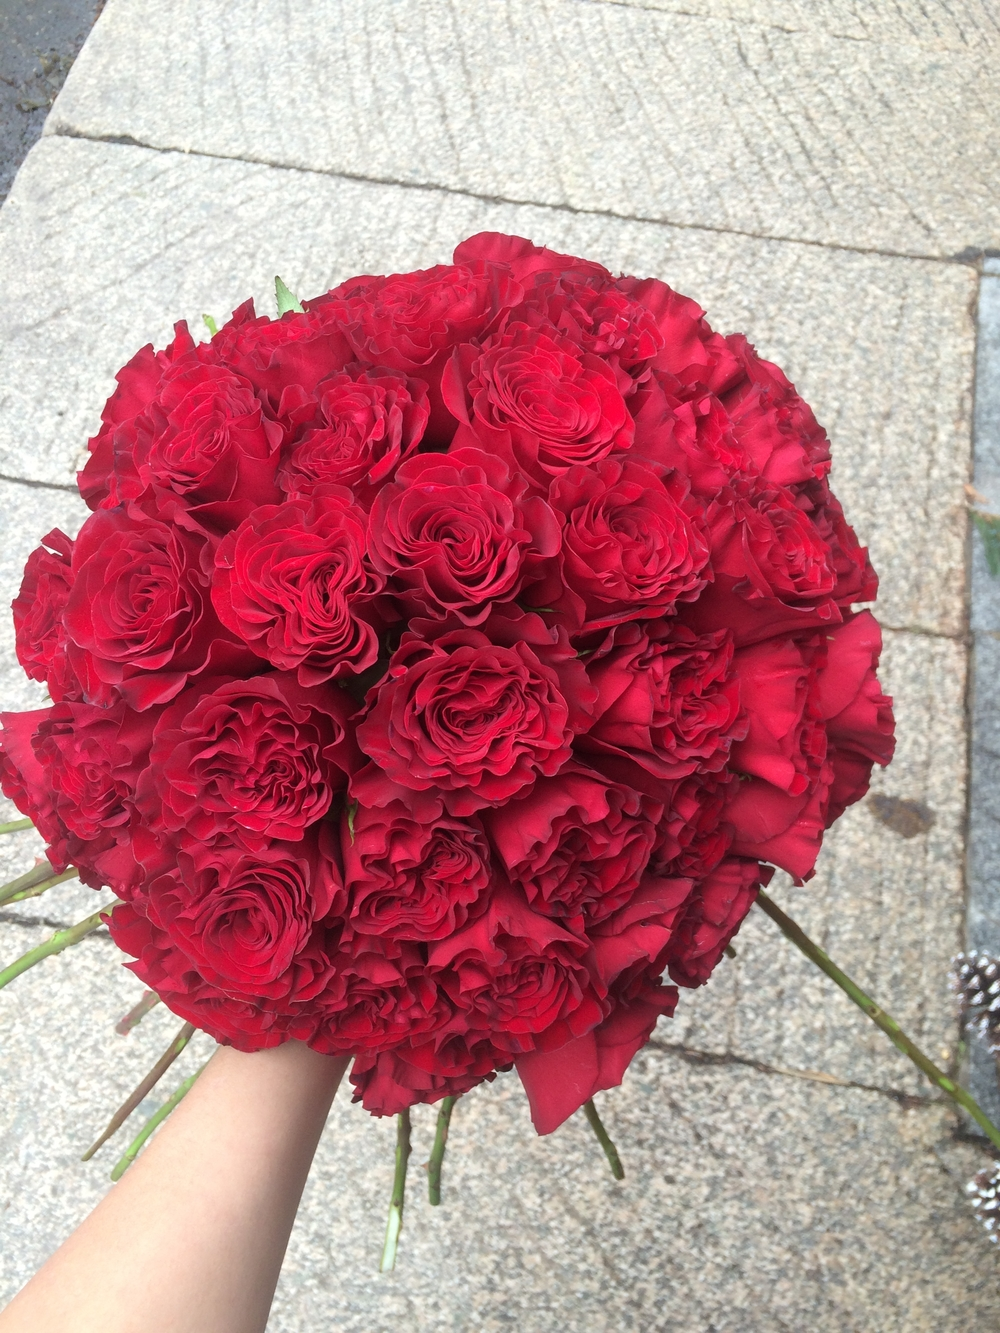 """We start by arranging 50 large red roses in the hand-tied style. This can be very difficult. Especially if you haven't de-thorned the roses! The rose variety we've used here is called """"Heart"""". It has an absolutely irresistible ruffled petal and color."""